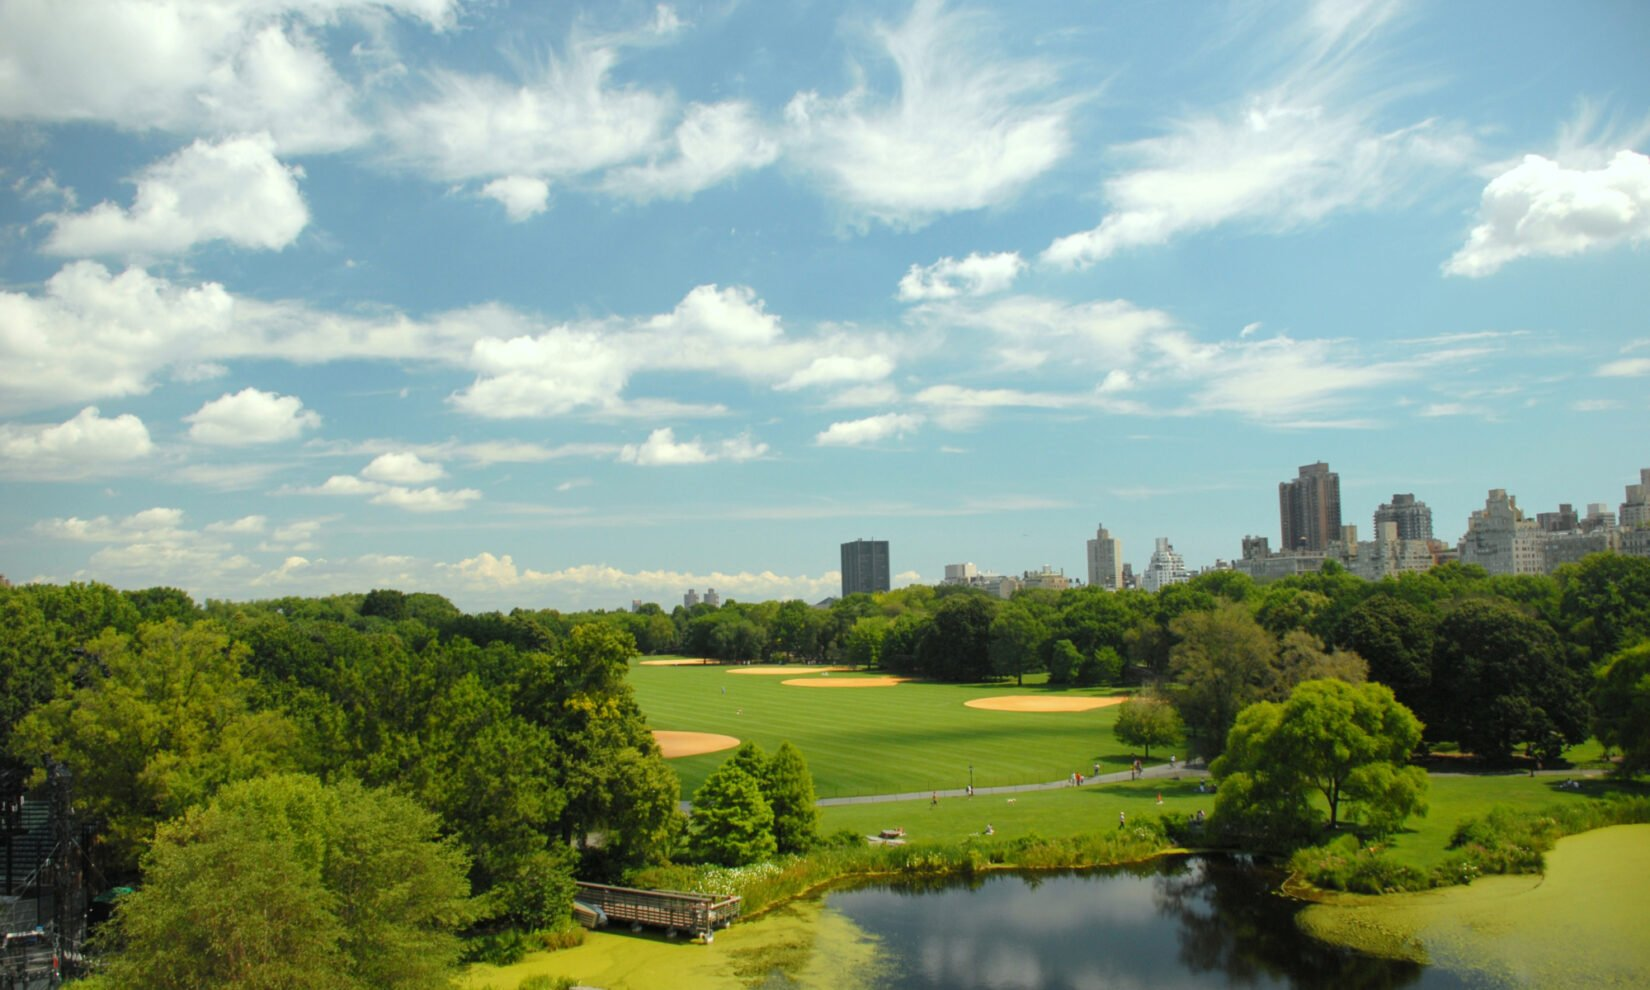 Summer Great Lawn Central Park credit the Central Park Conservancy